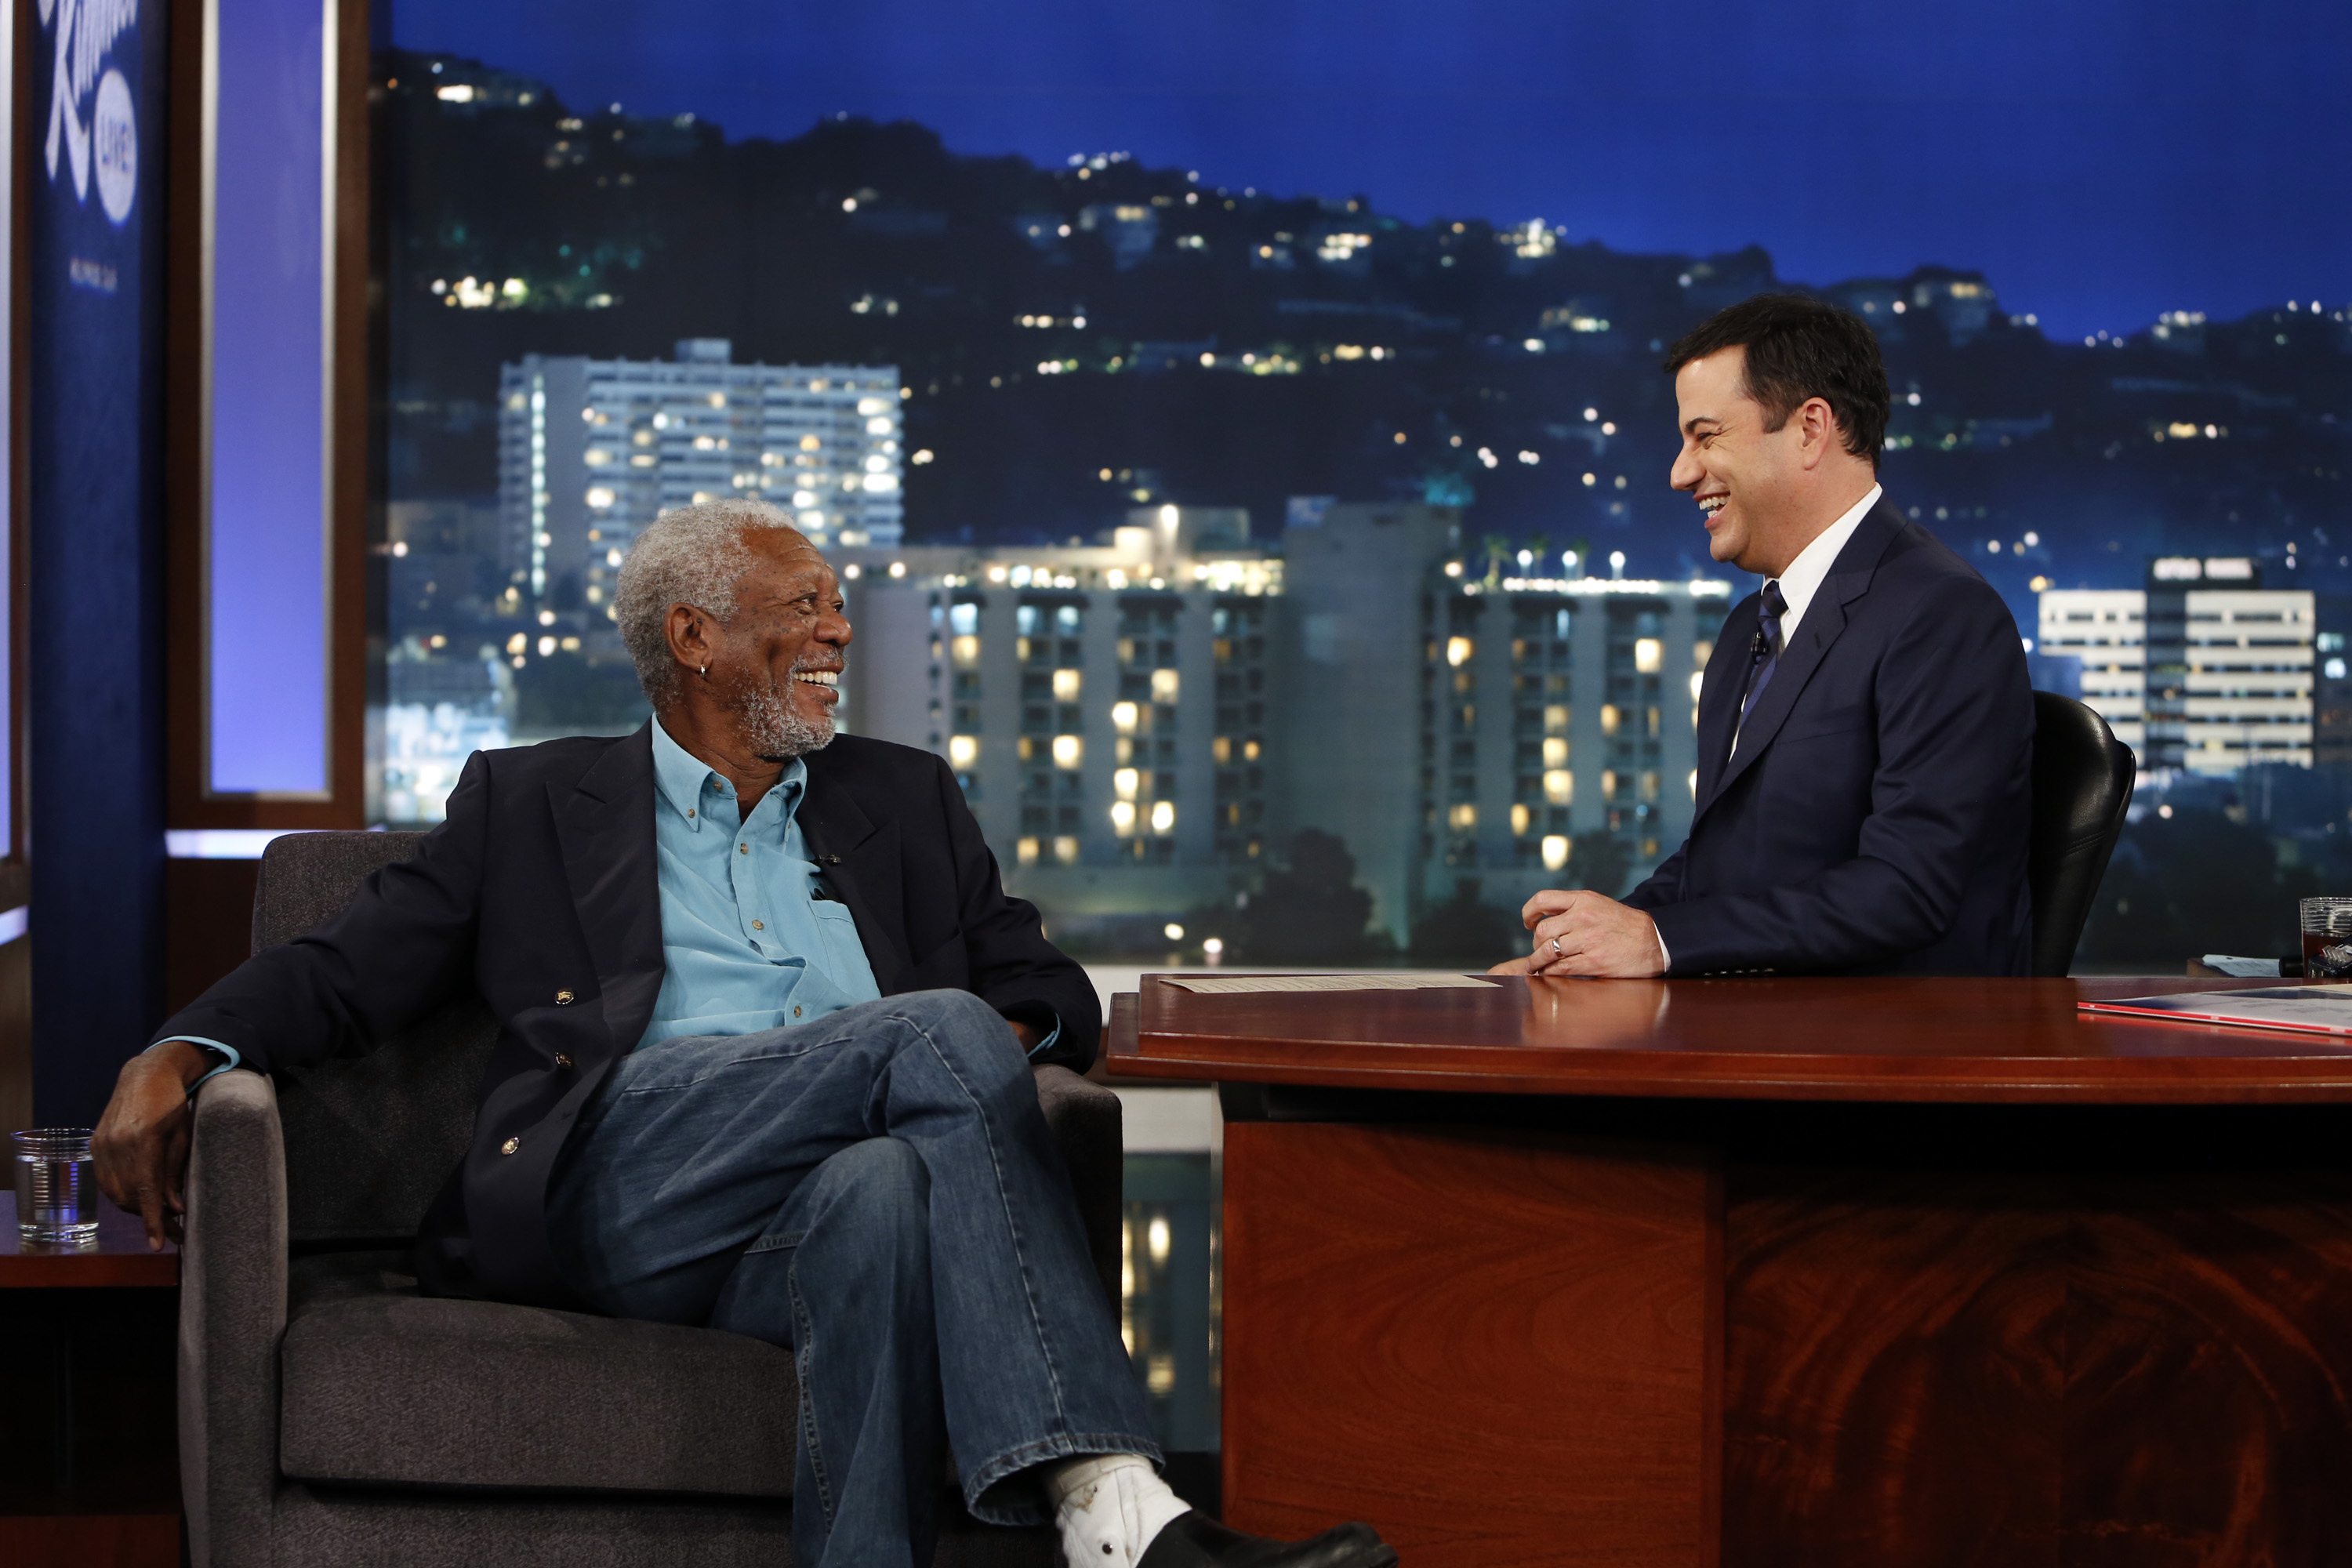 Jimmy Kimmel chats with Morgan Freeman on Sept. 11, 2014 on Jimmy Kimmel Live!